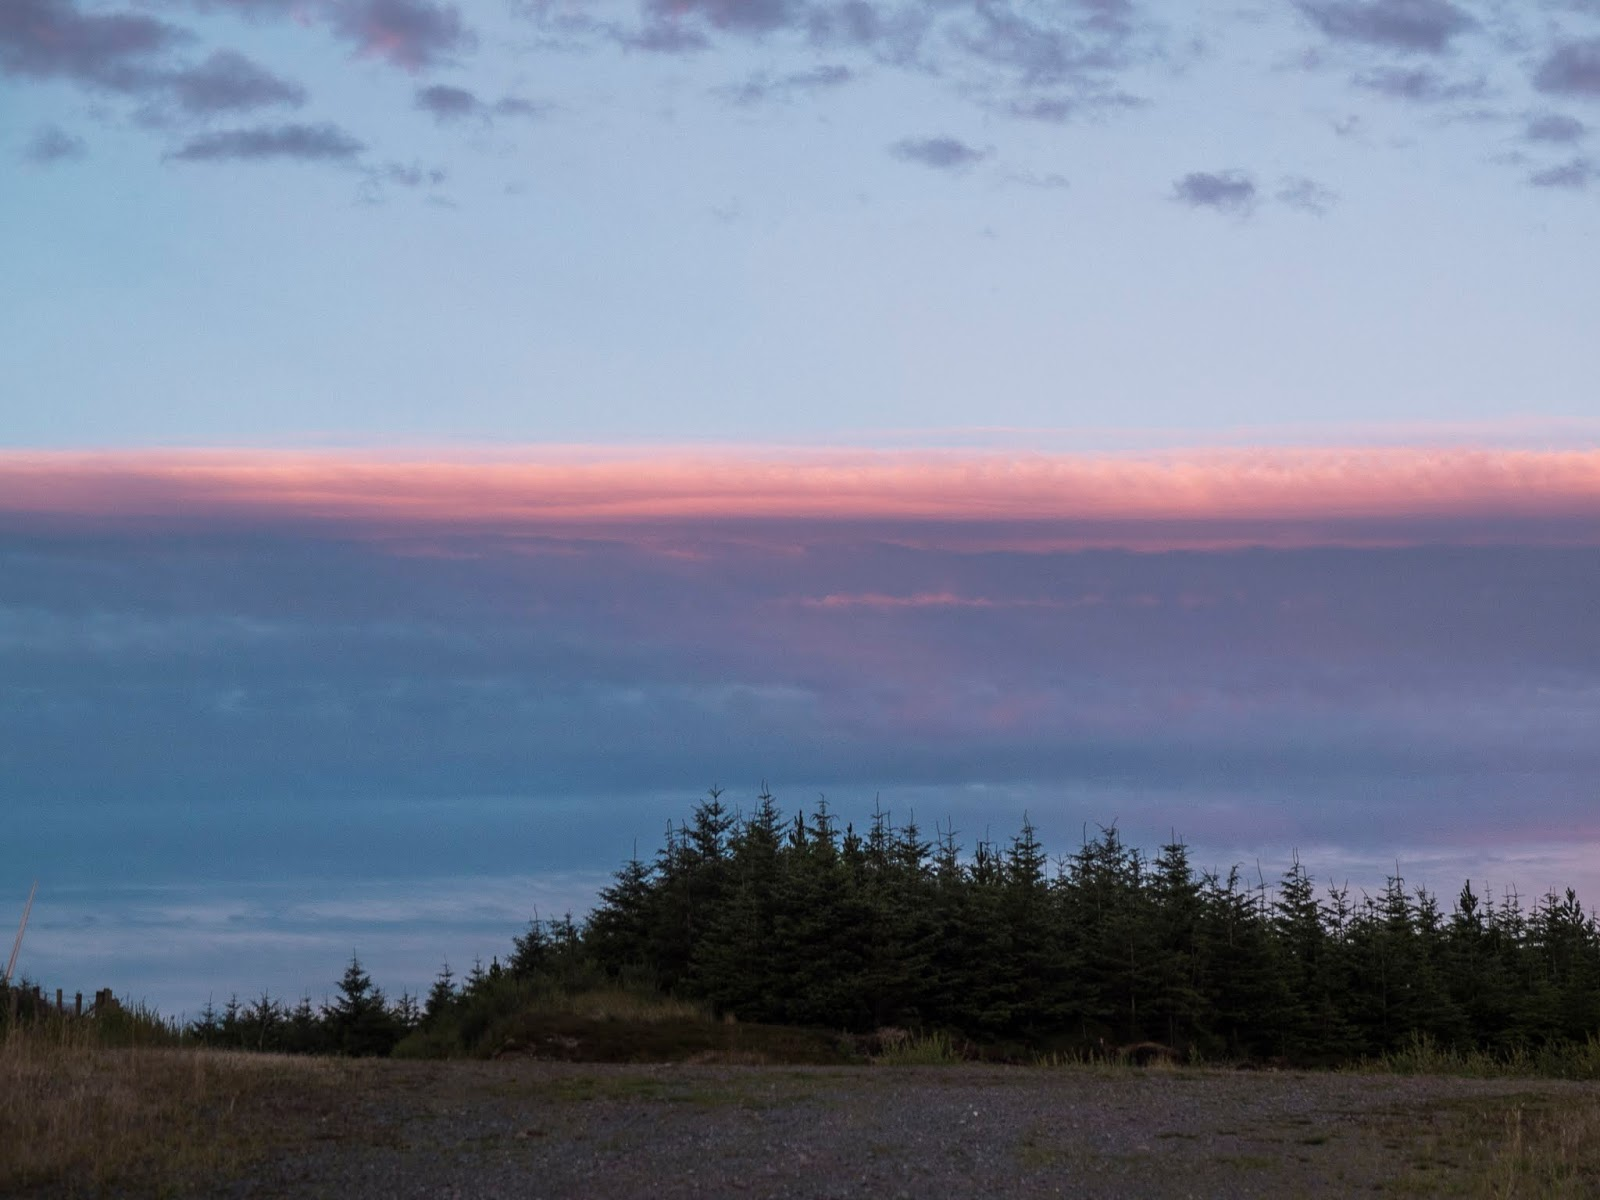 Sunset over a forest on top of a hill in the Boggeragh Mountains, Co.Cork.